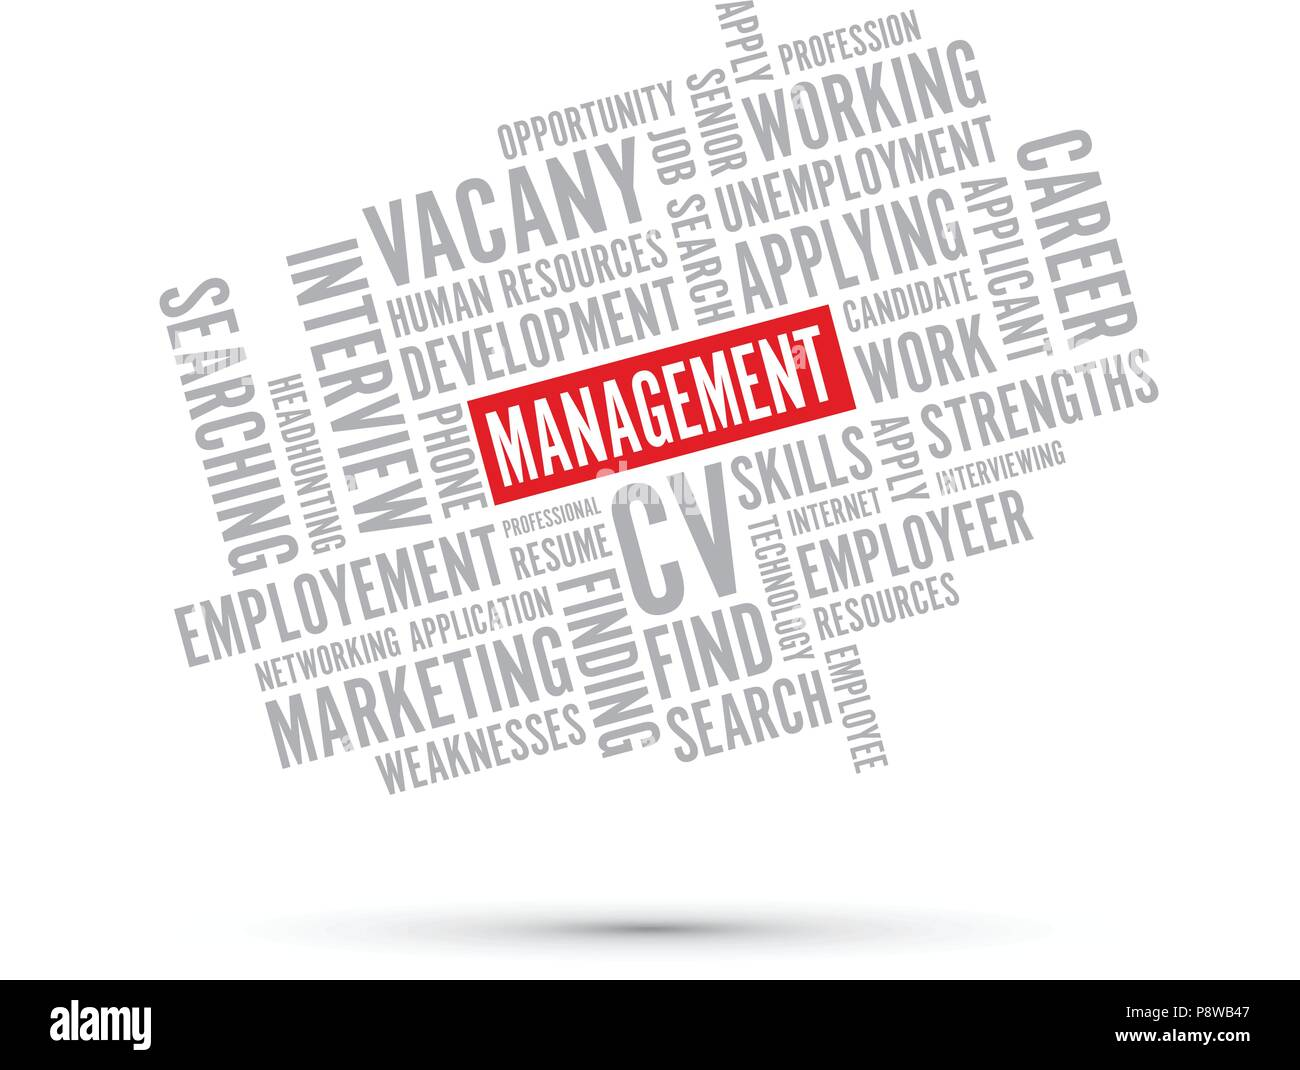 management text background - Stock Image